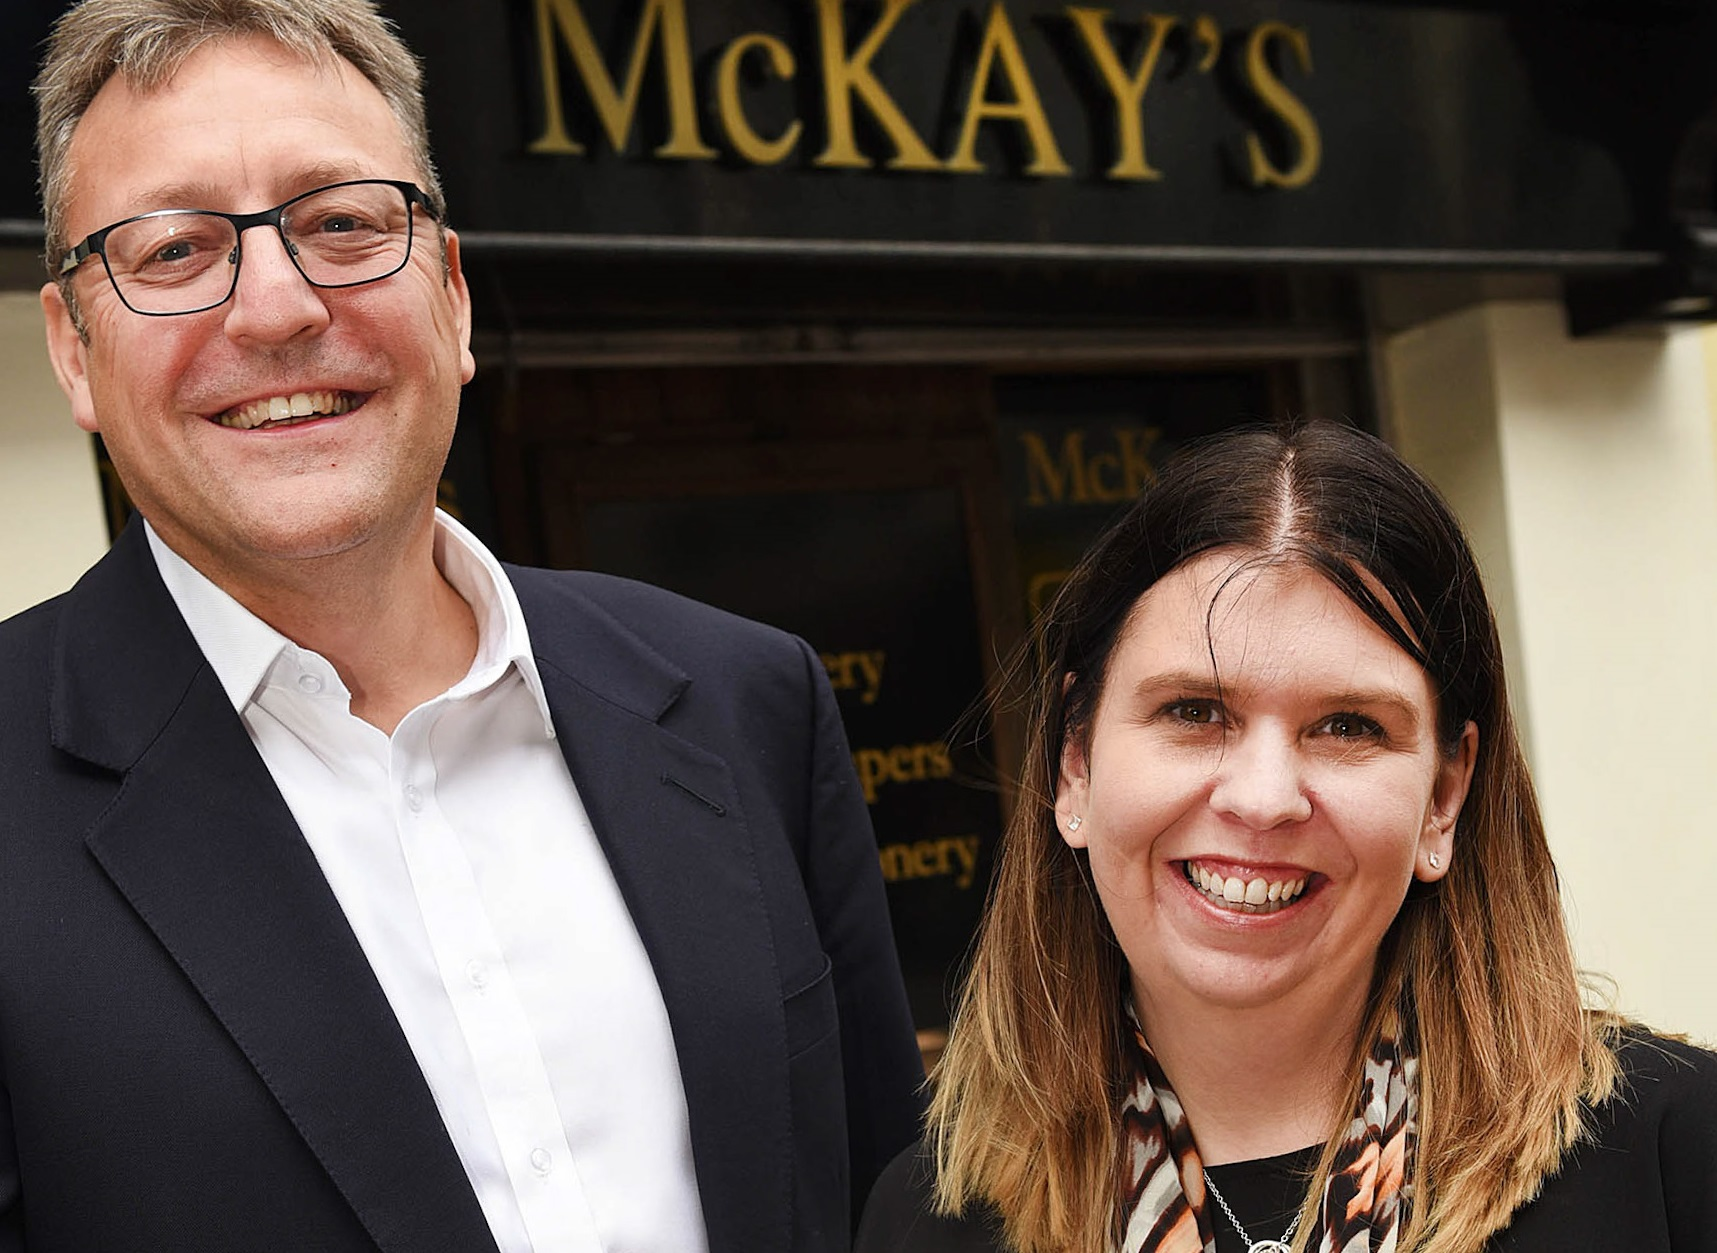 McKays awarded by National Lottery